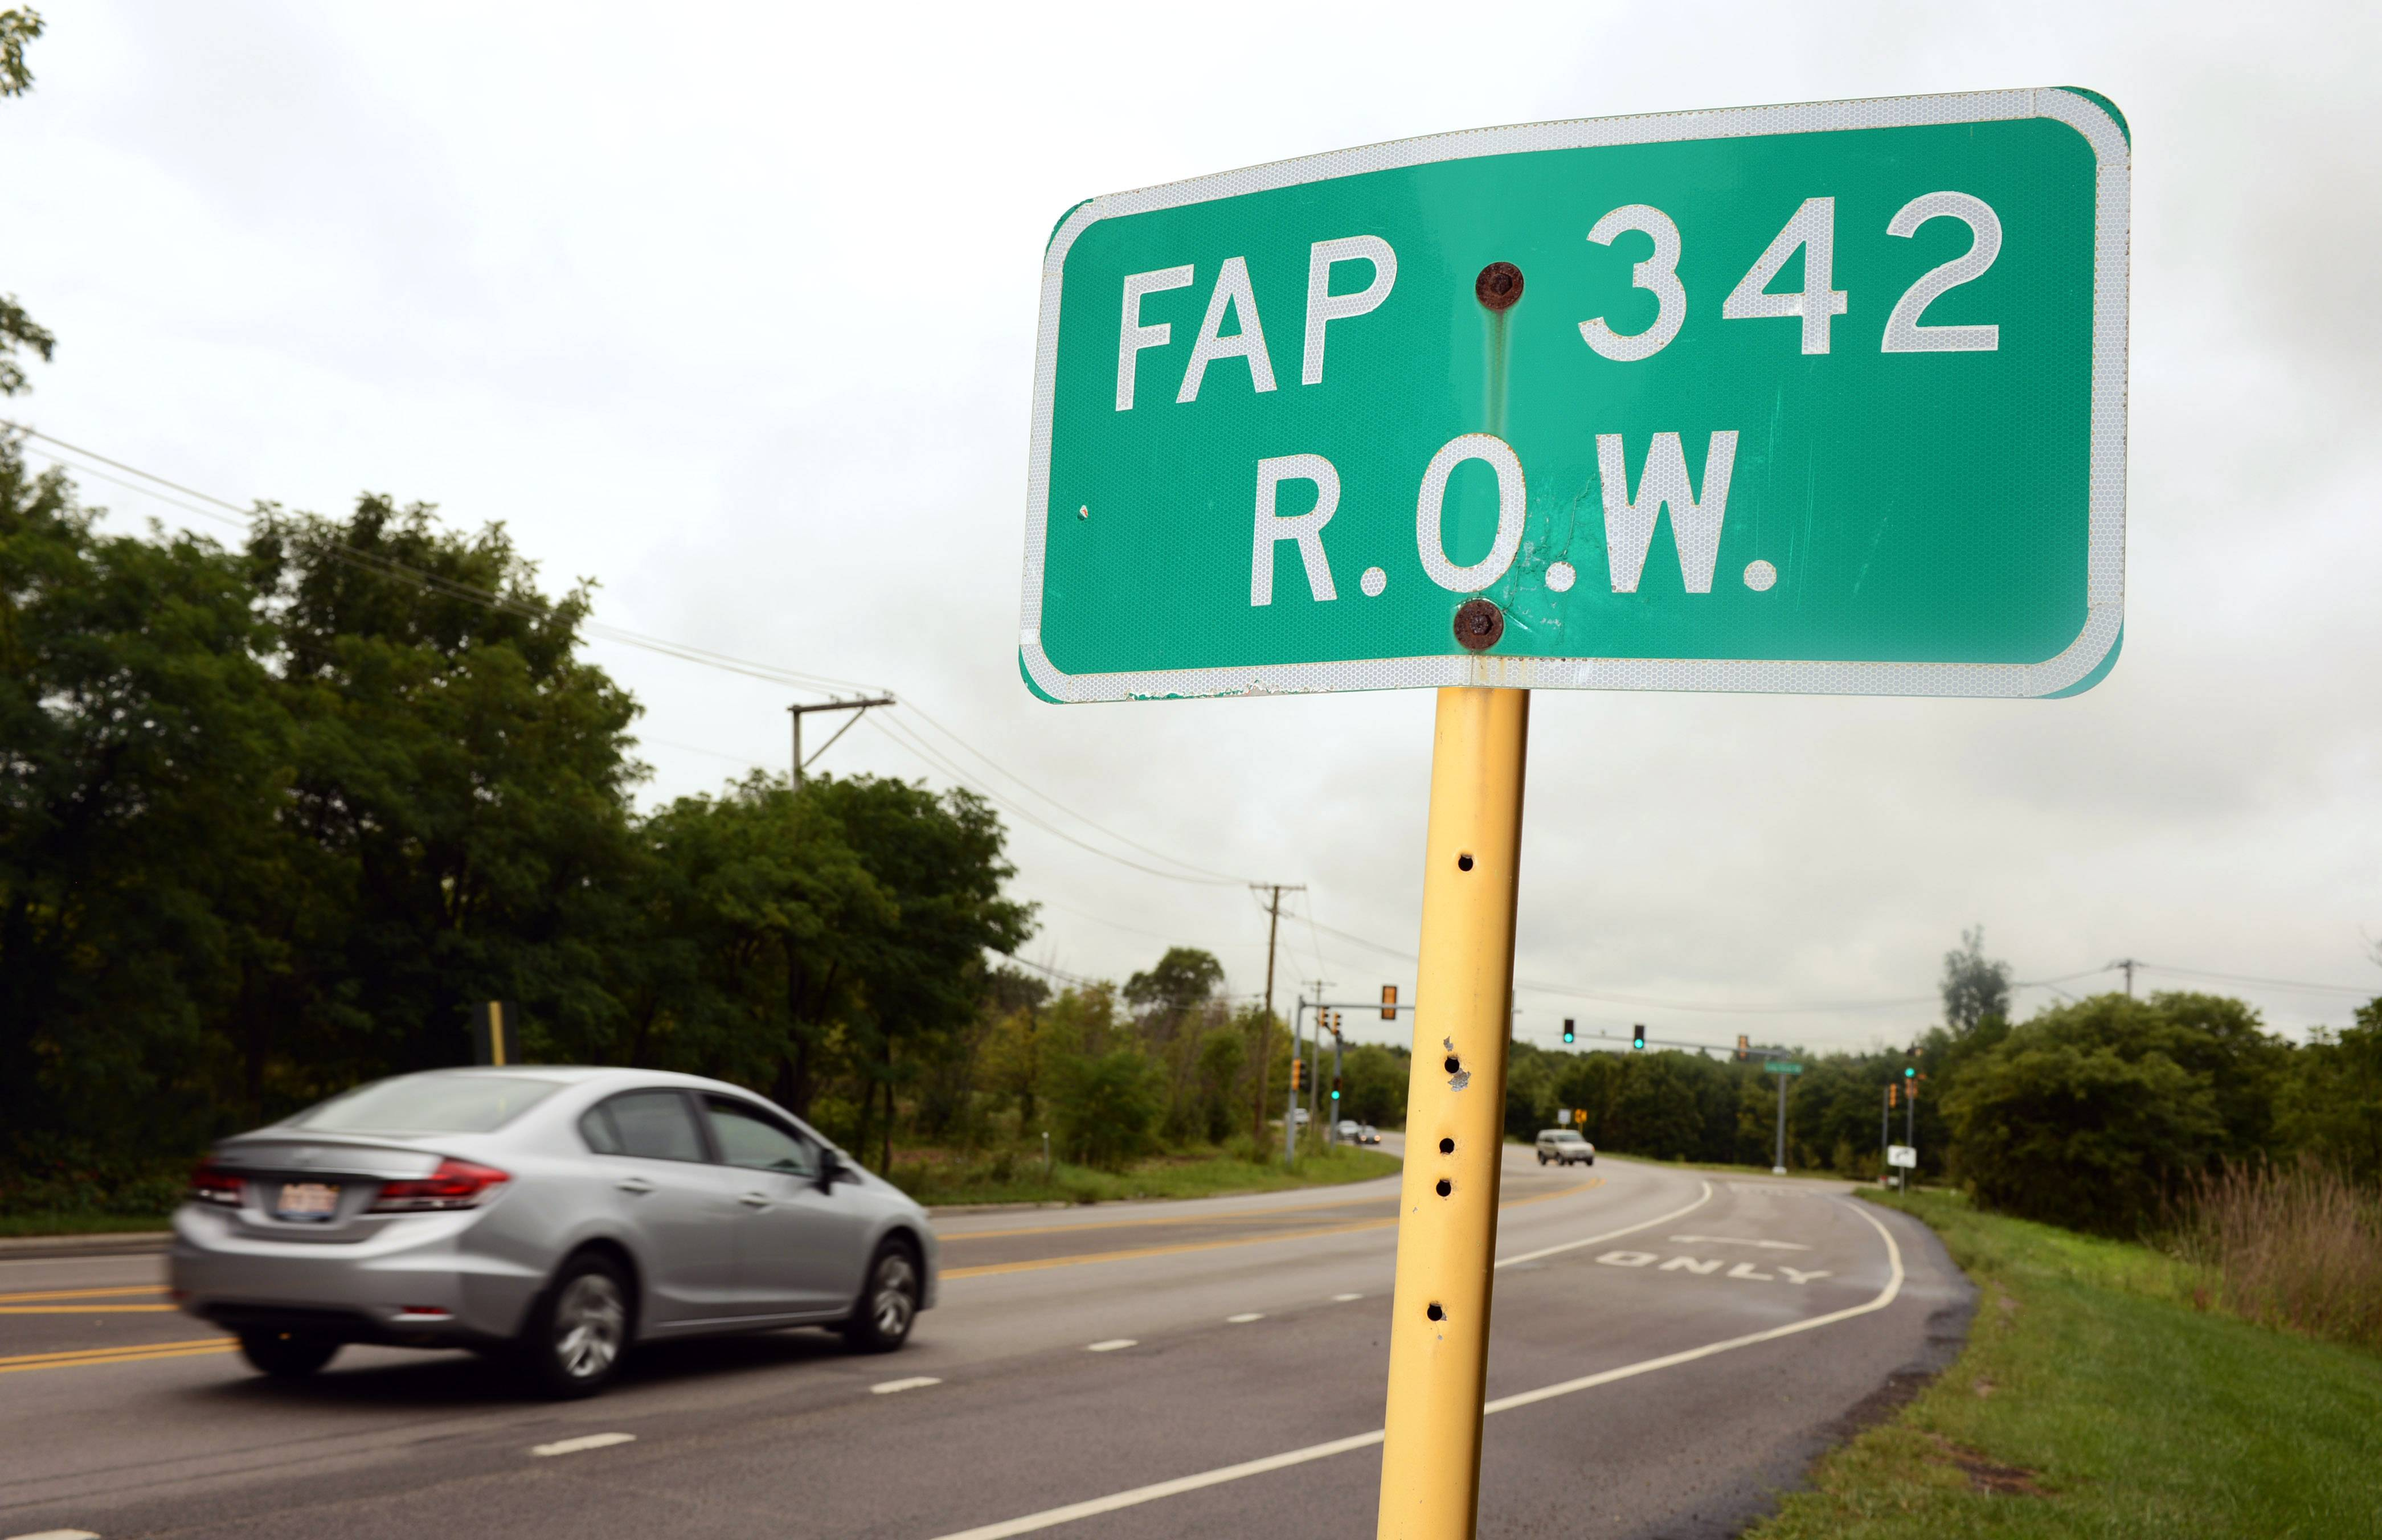 Opposition to a $40 million to $50 million environmental study for the proposed extension of Route 53 into Lake County has stiffened with a joint statement from Hawthorn Woods and Long Grove.